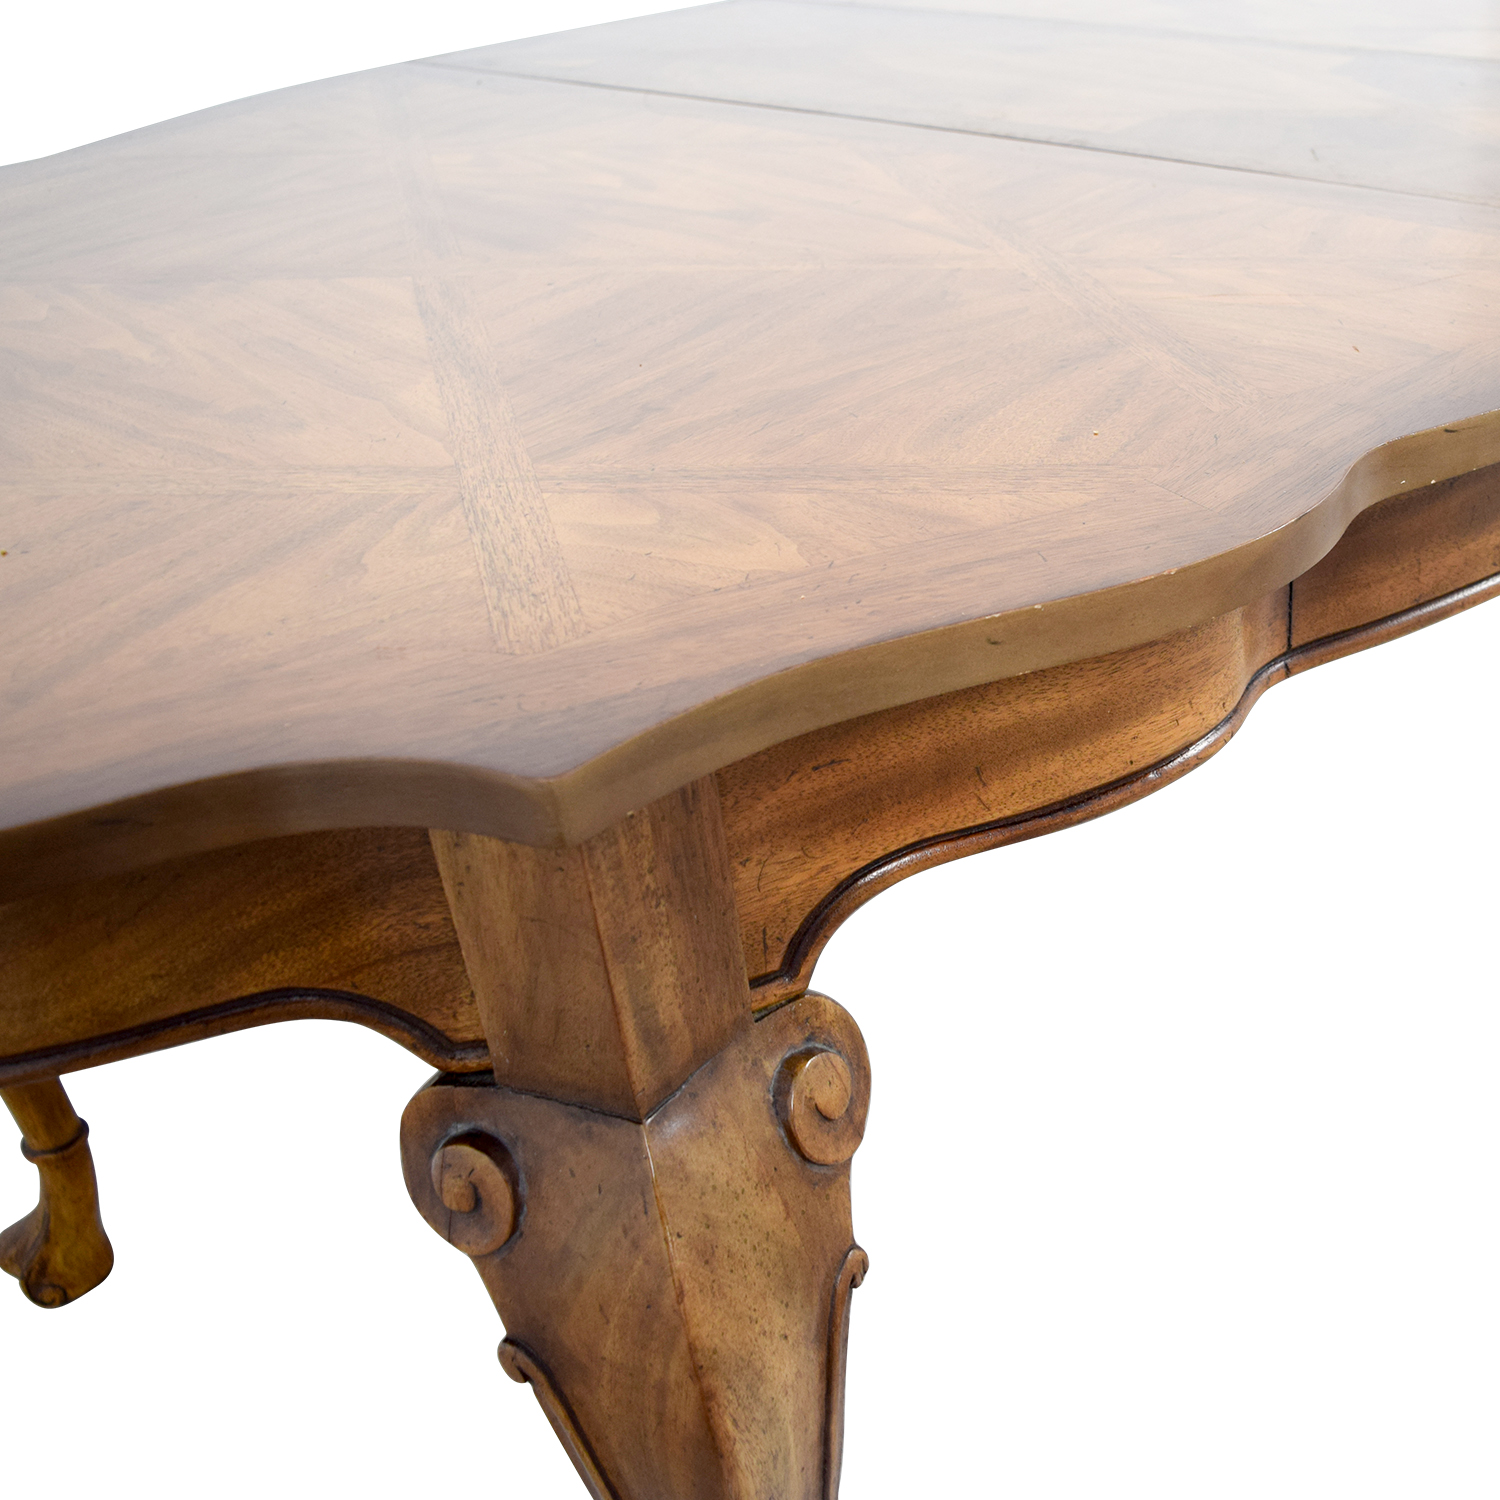 Carved Extendable Wood Dining Table Brown